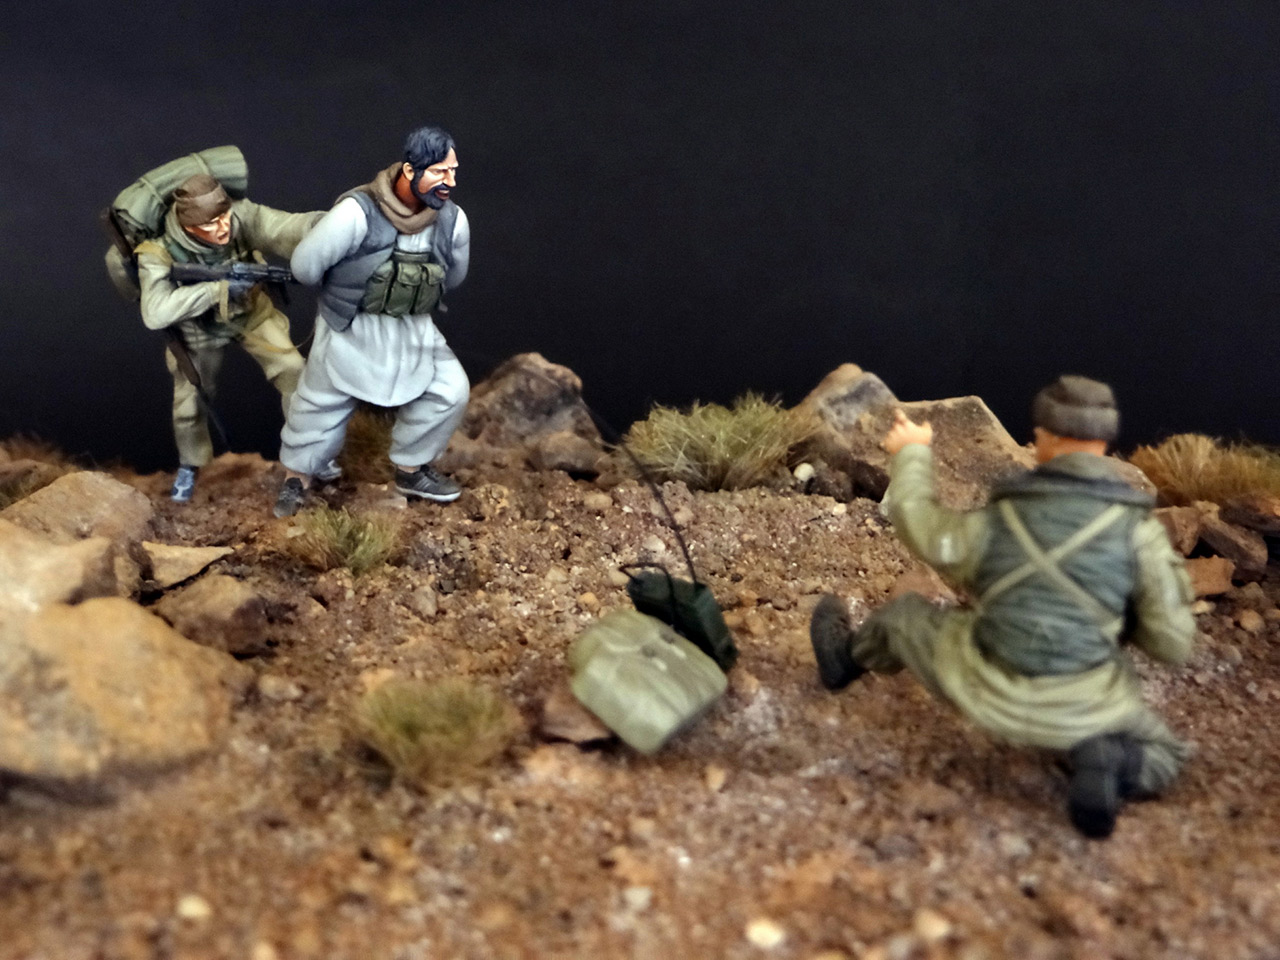 Dioramas and Vignettes: GRU special forces in Afghanistan, photo #24